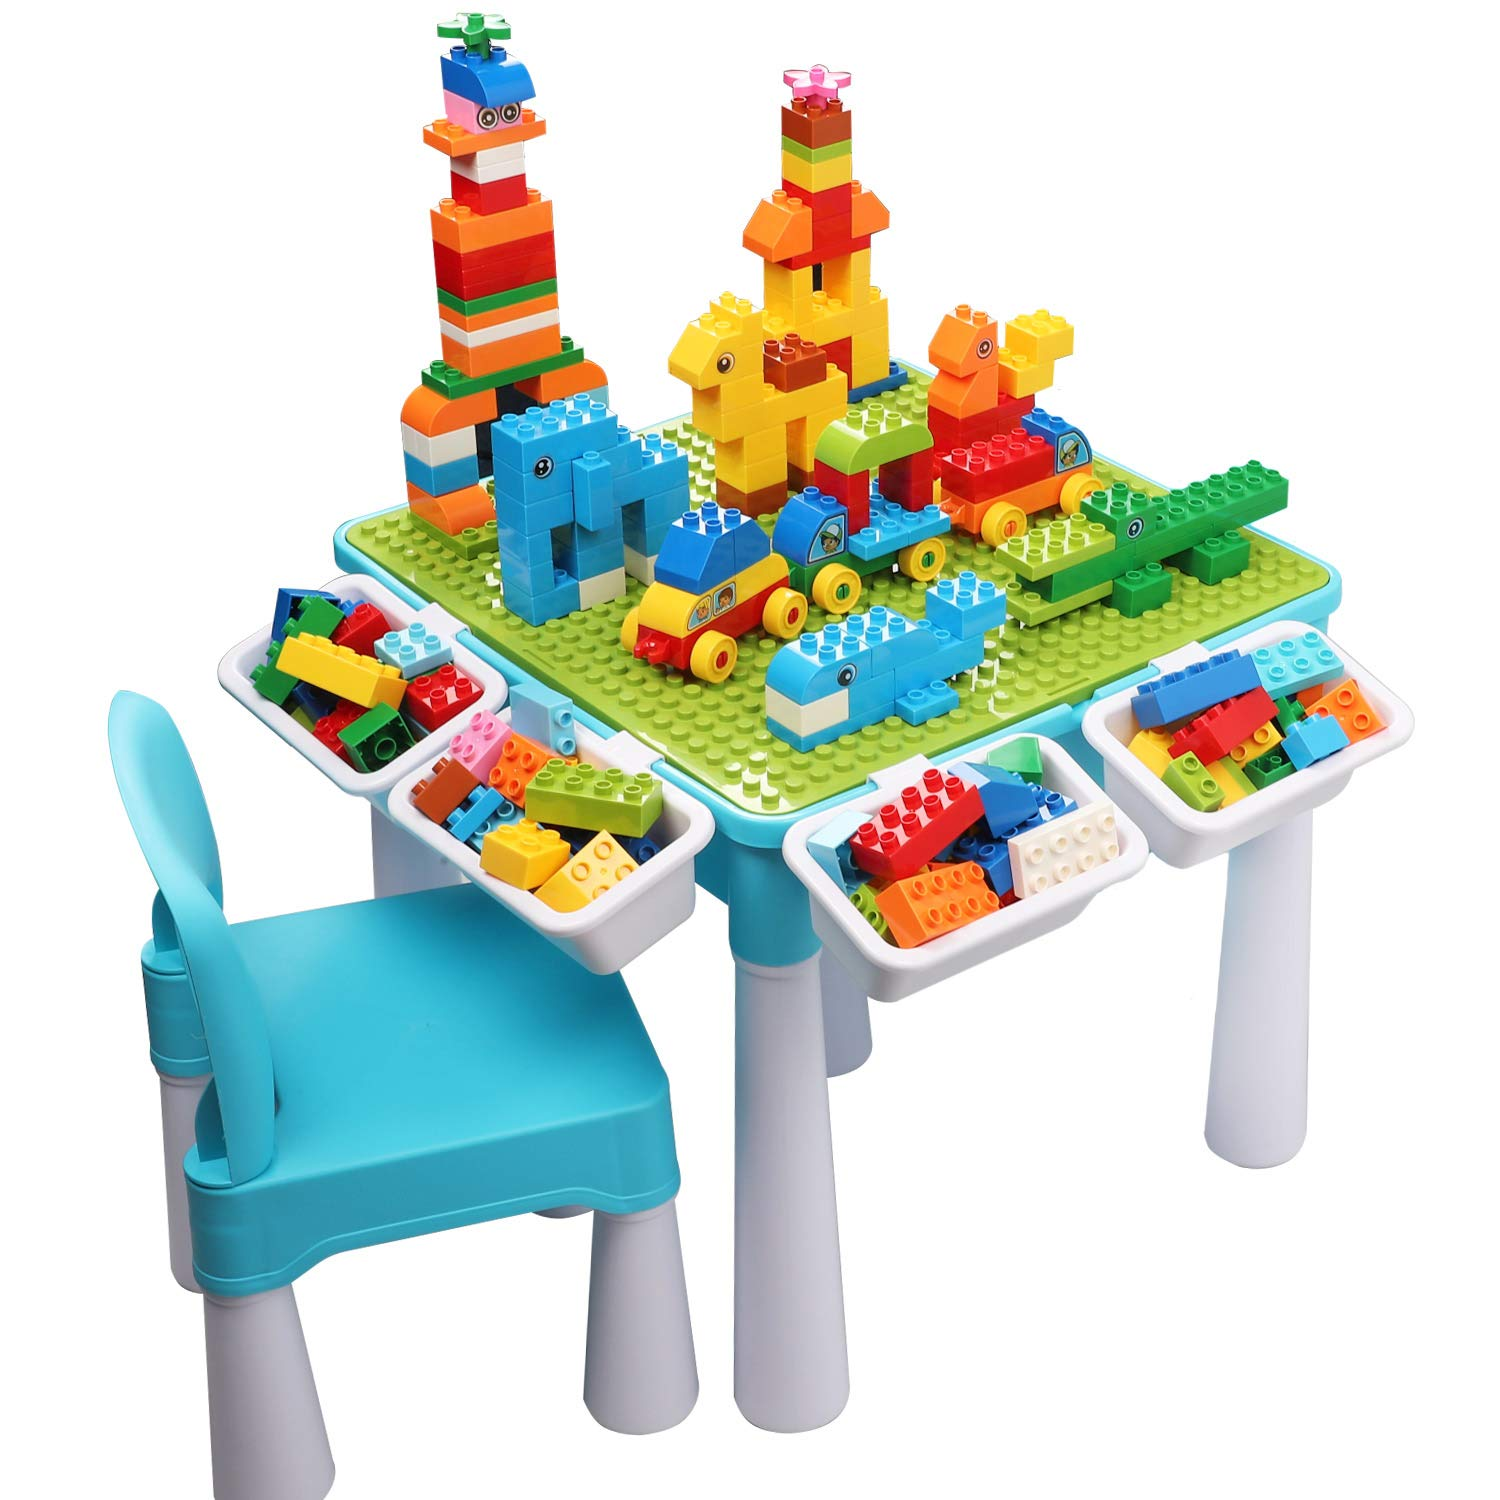 71VYAF5A8CL. SL1500 10 Best Baby Activity Tables 2021 [In-Depth Review]